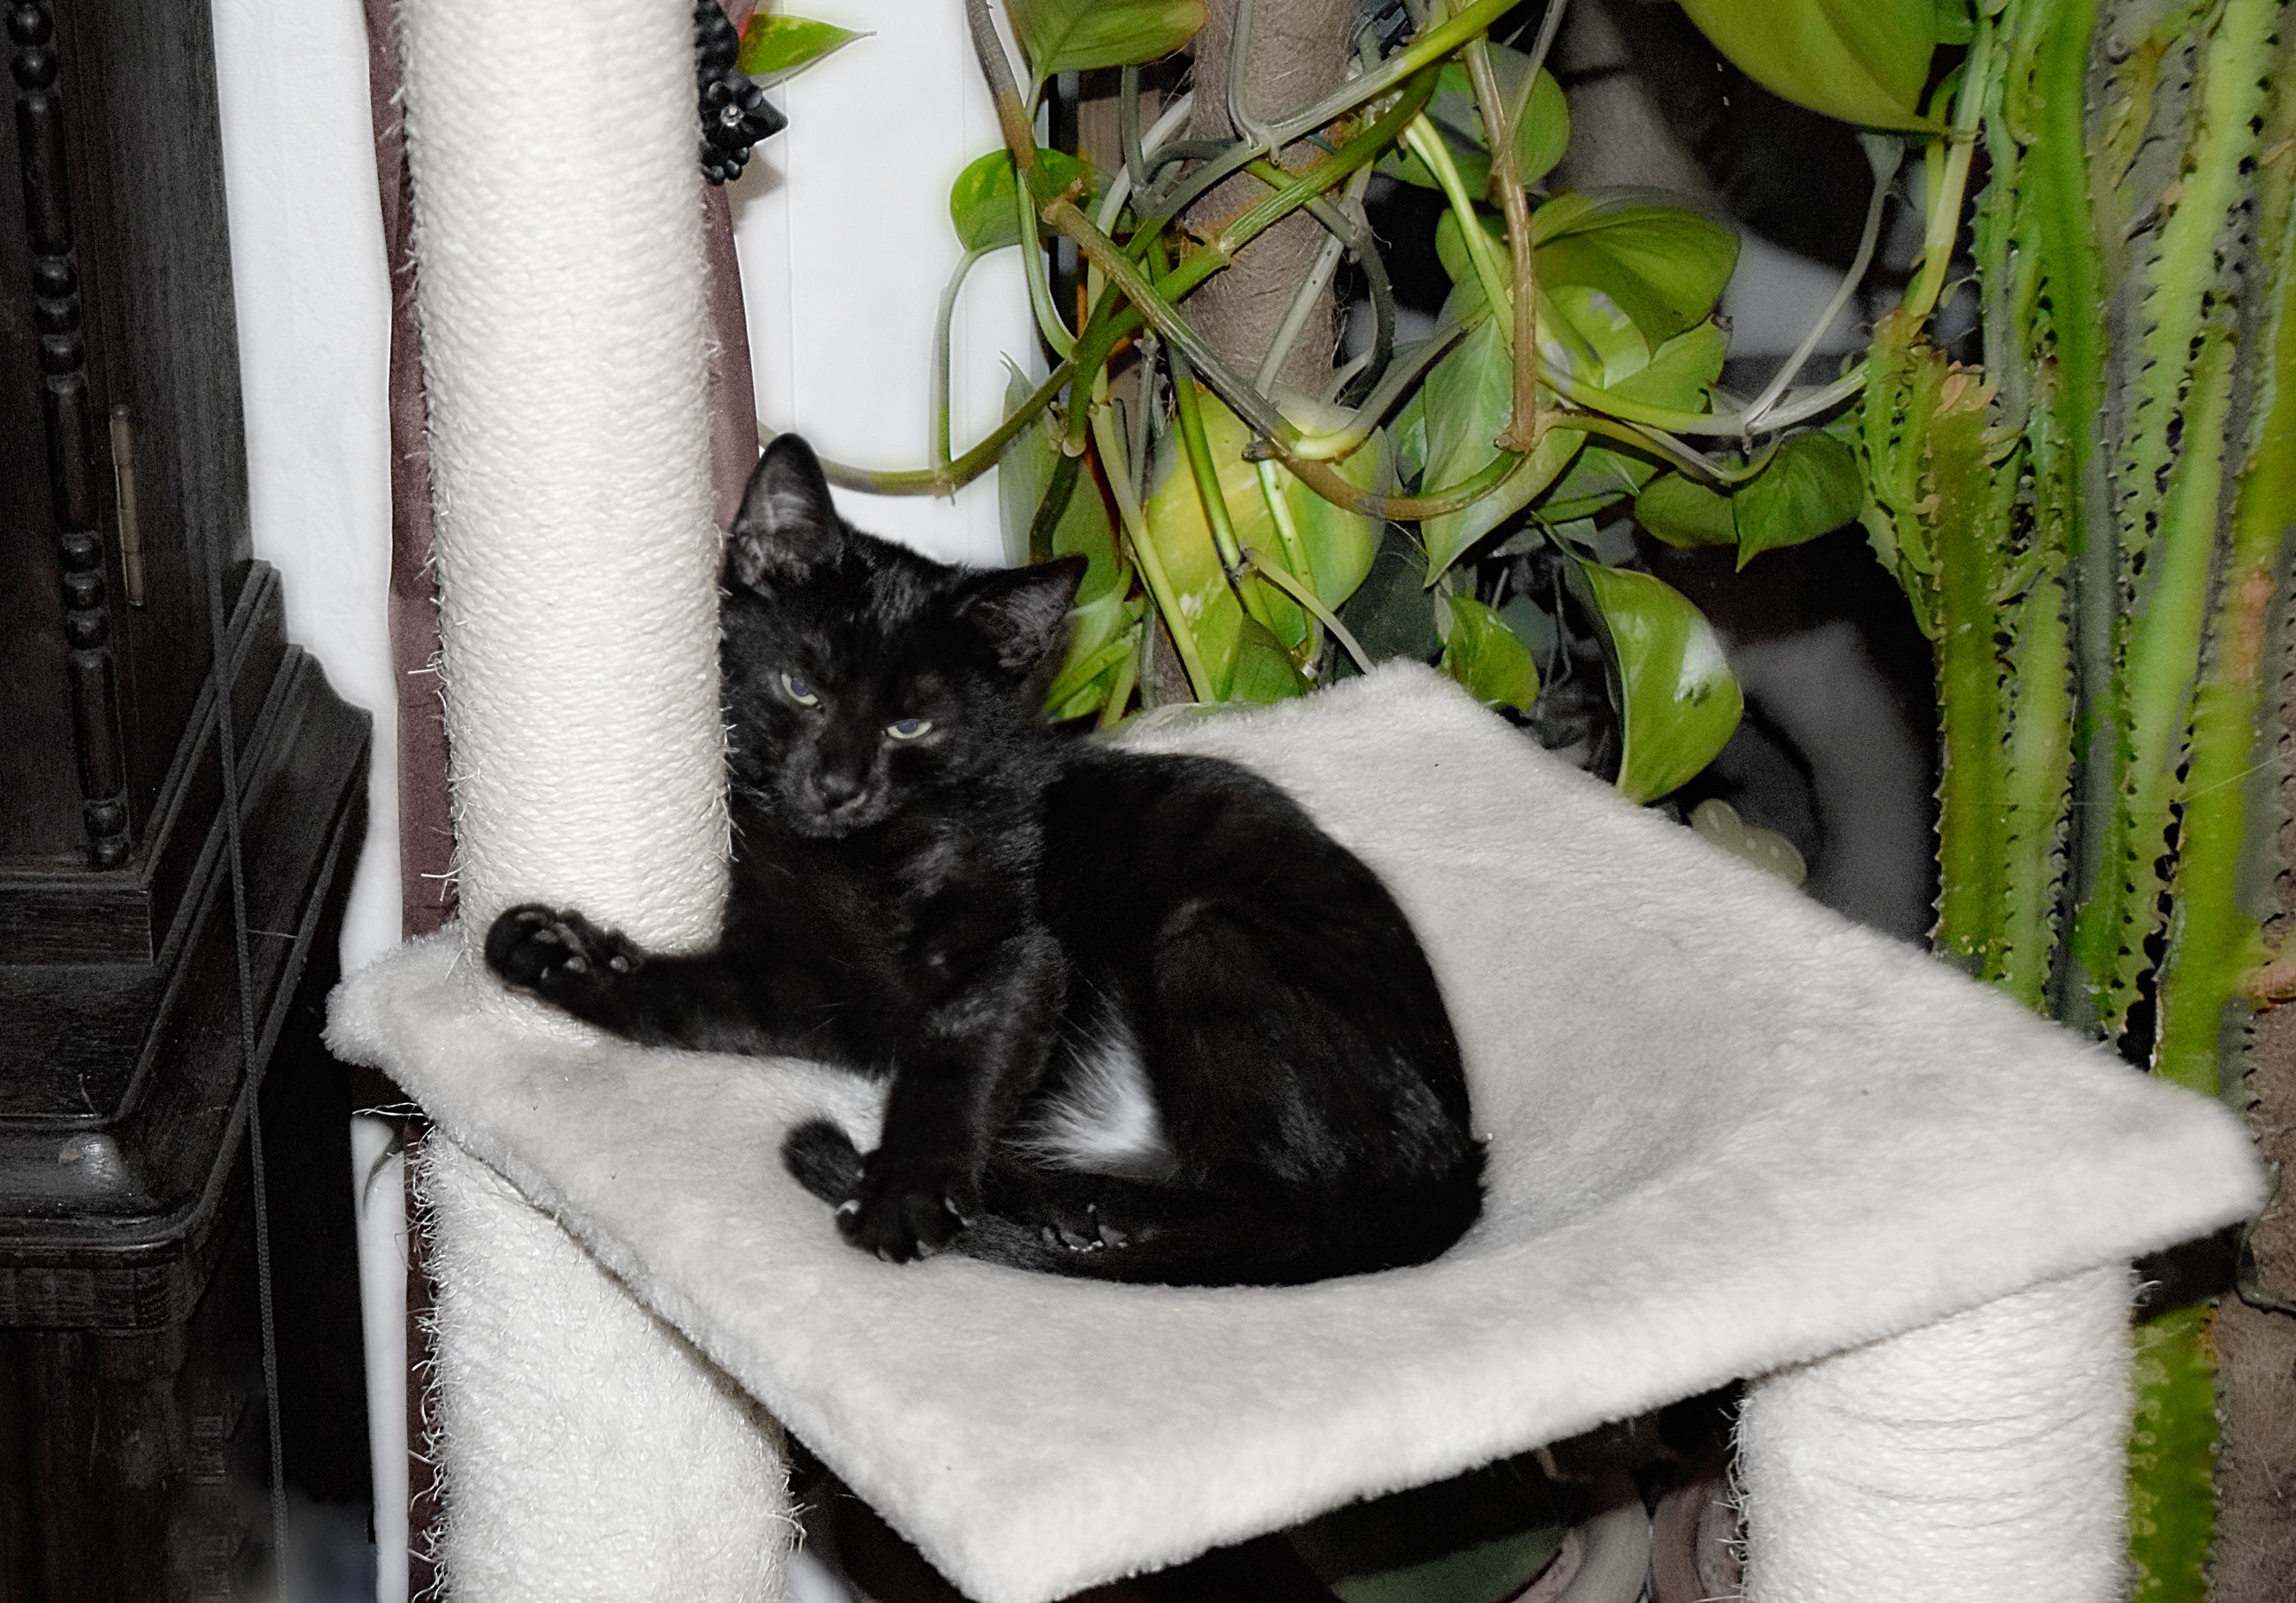 mammal, animal themes, cat, animal, domestic, feline, domestic animals, pets, domestic cat, one animal, vertebrate, relaxation, no people, sitting, looking at camera, plant, black color, portrait, sleeping, lying down, whisker